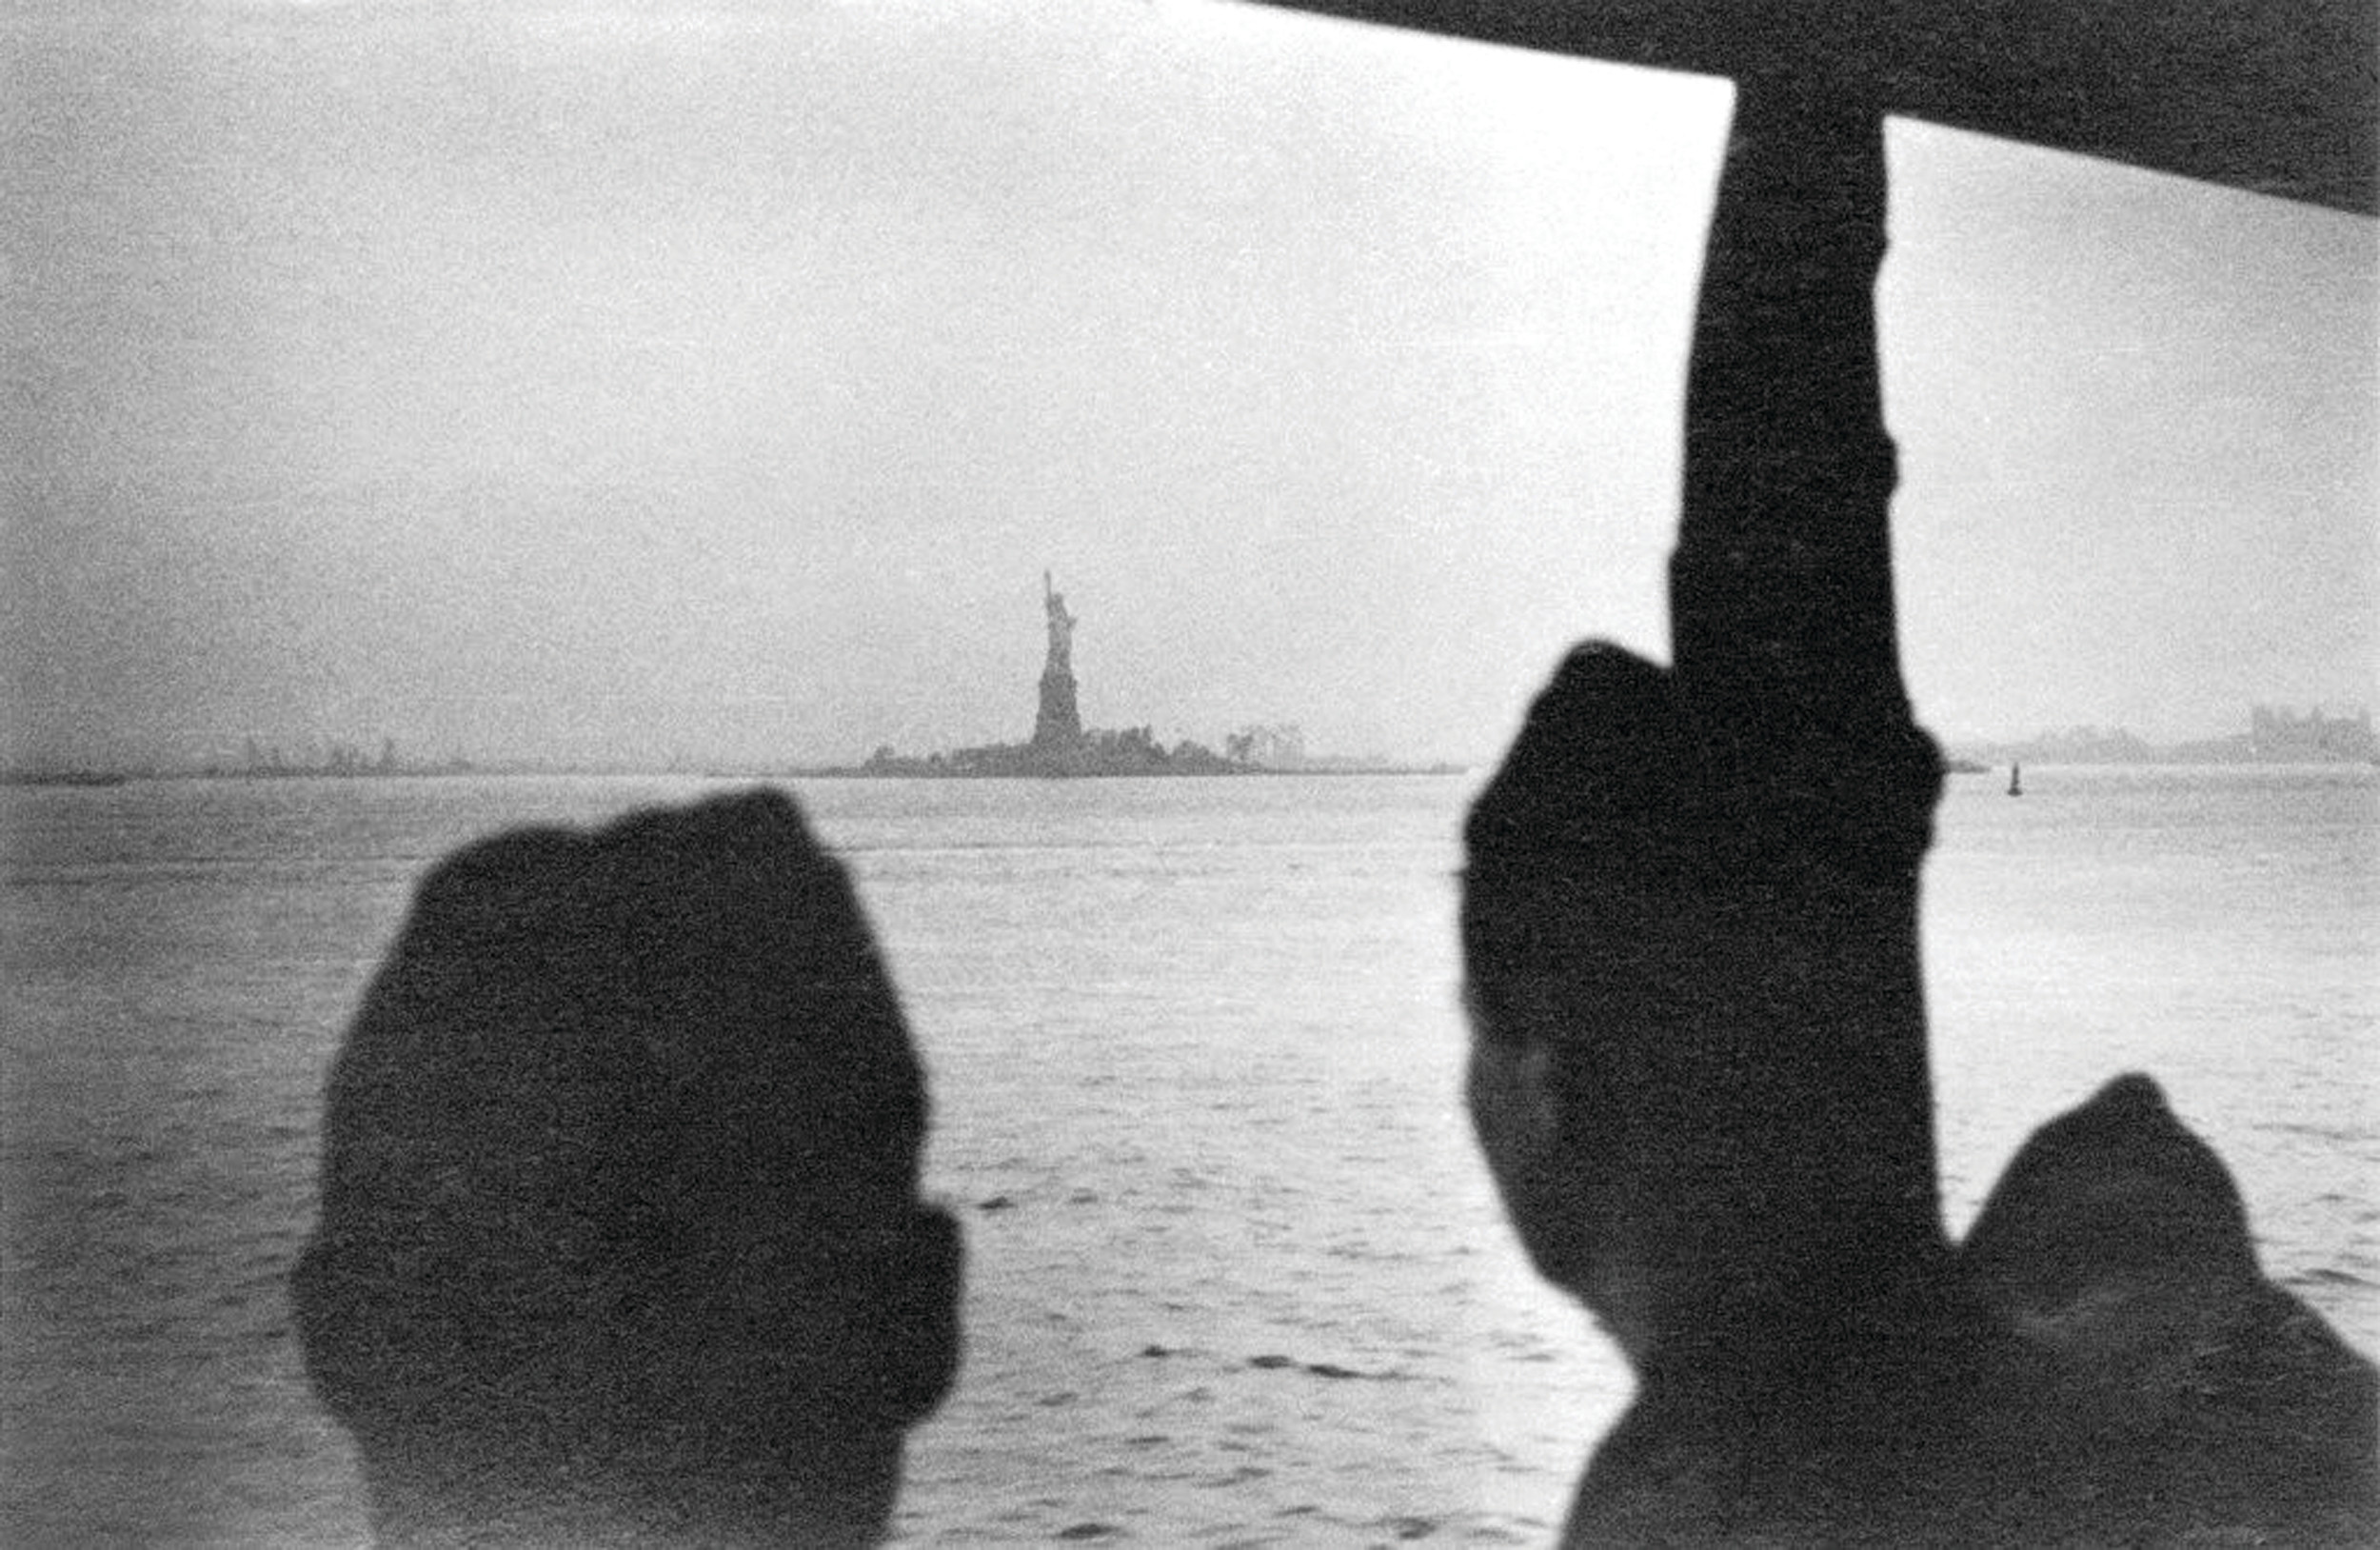 Heckel is seen as the Statue of Liberty comes into view after his liberation in 1945.